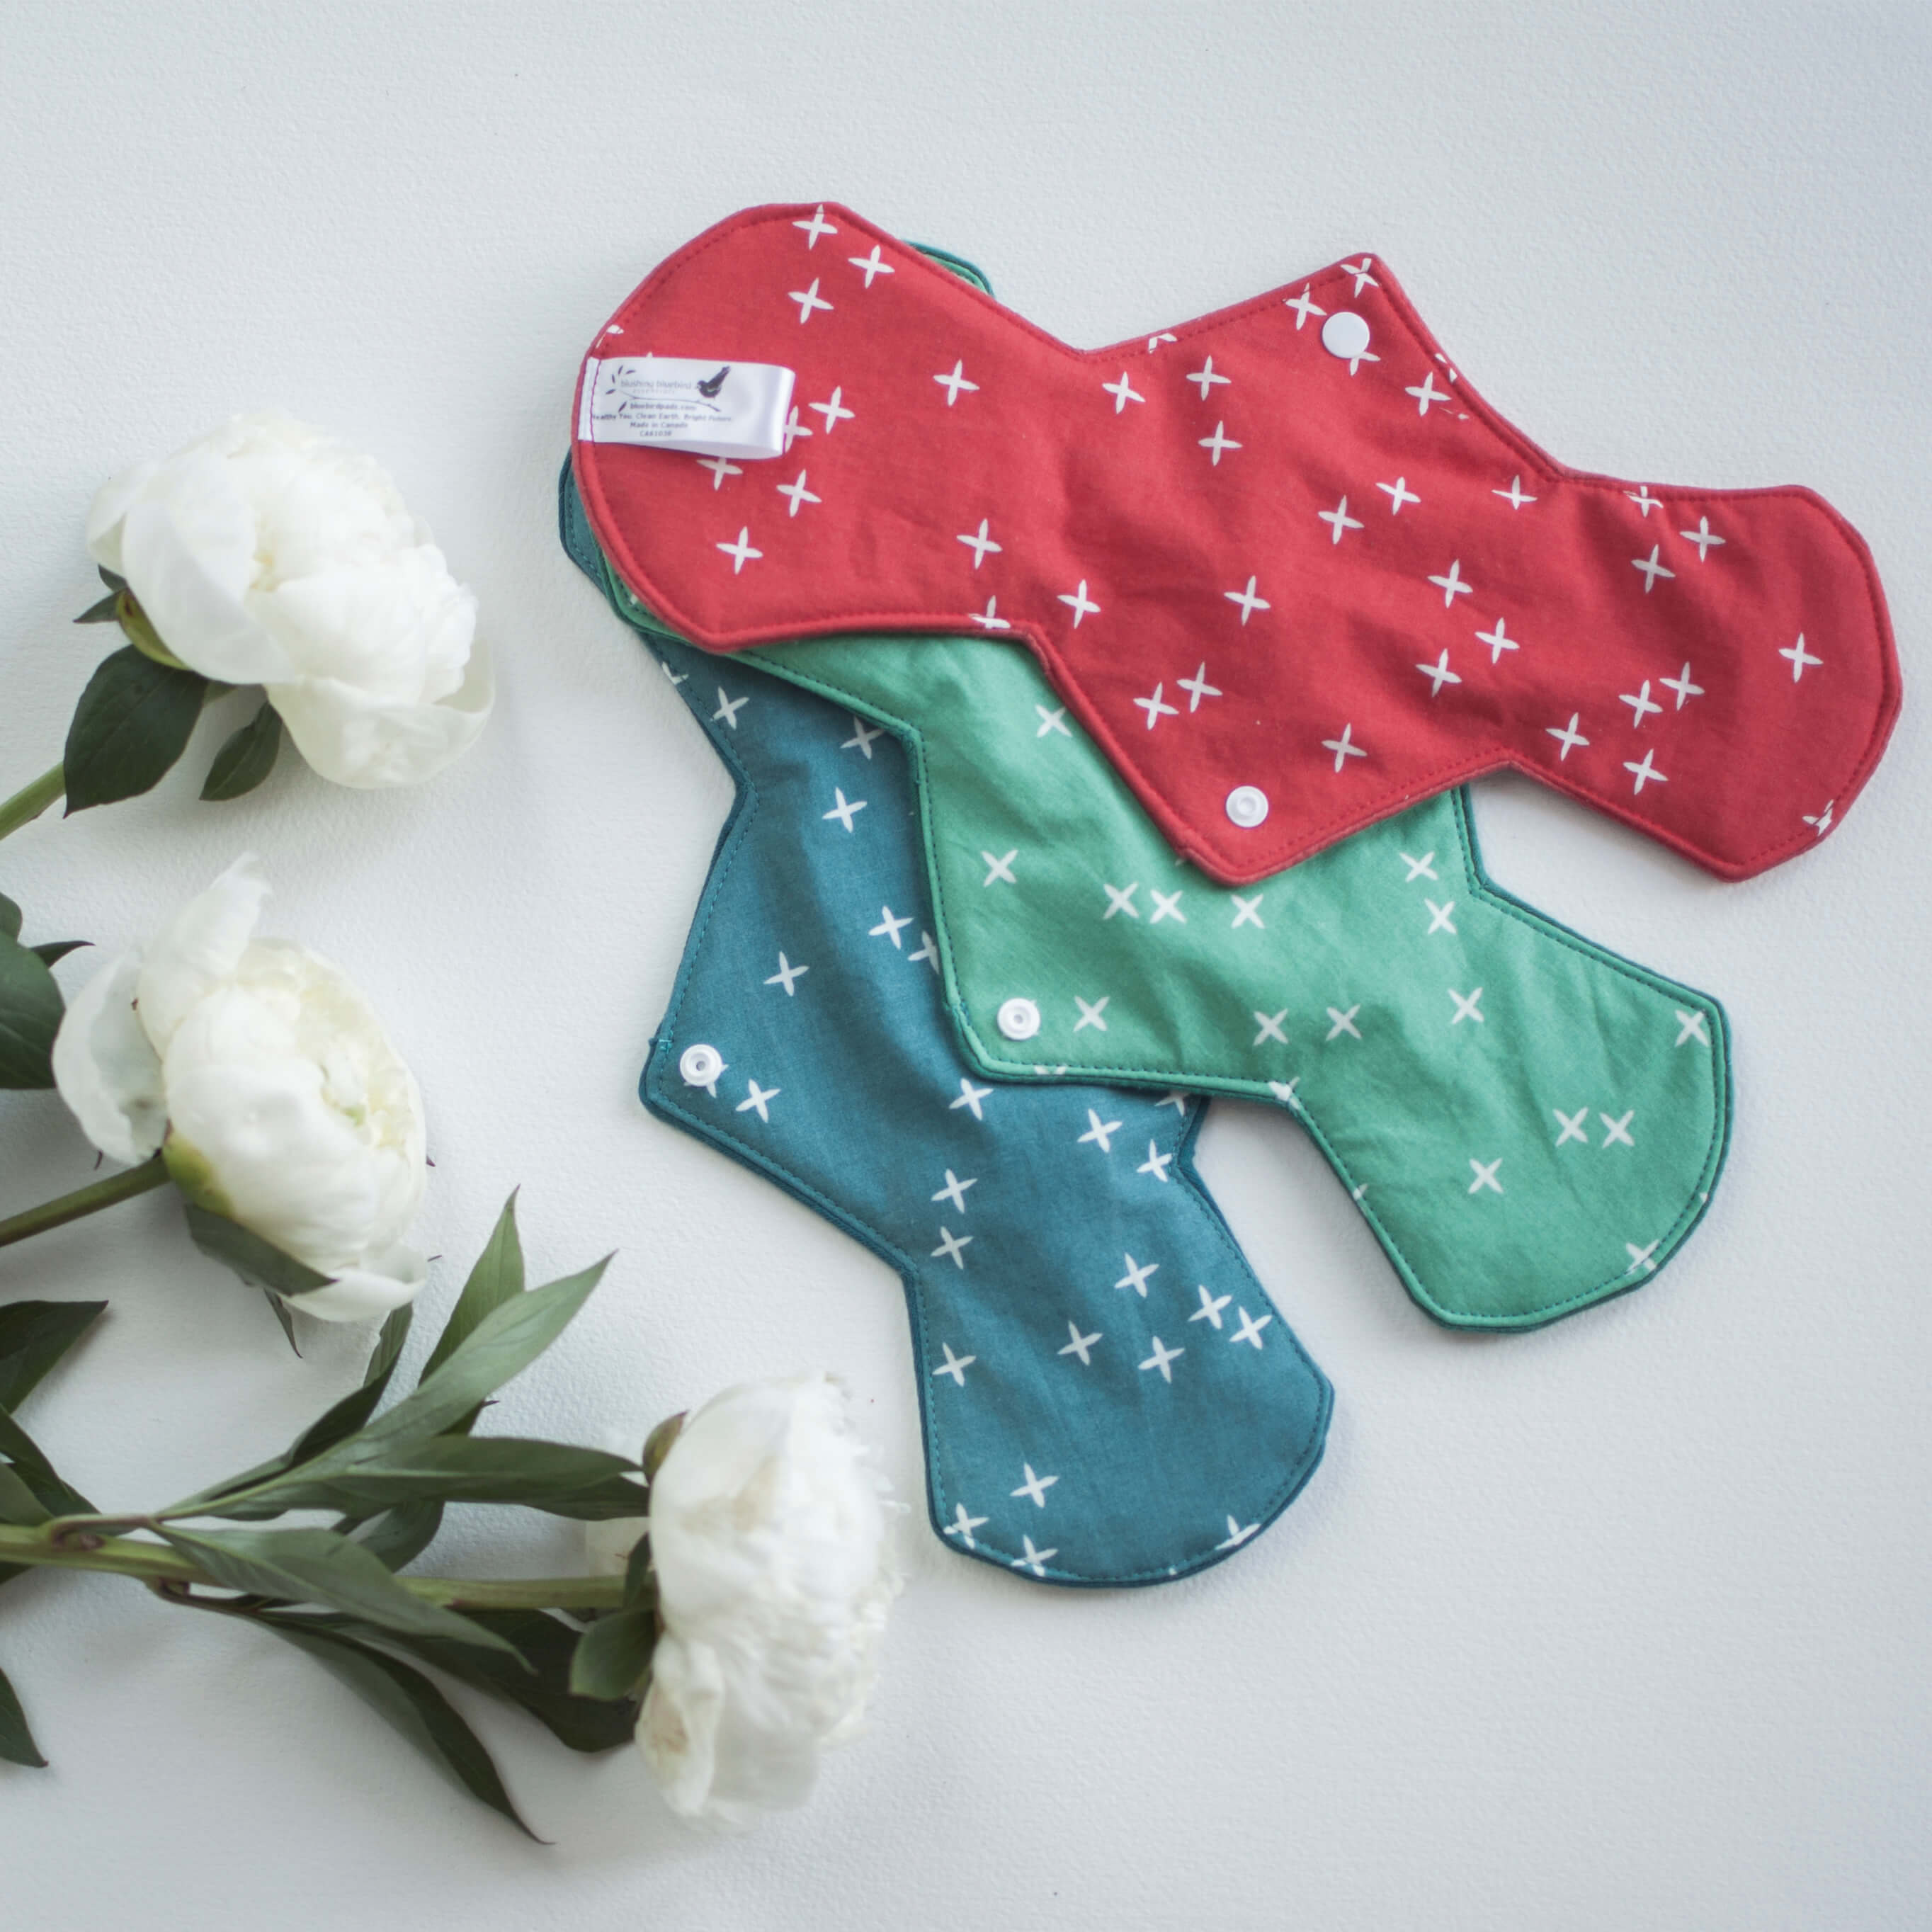 Super Night Washable Cloth Pad